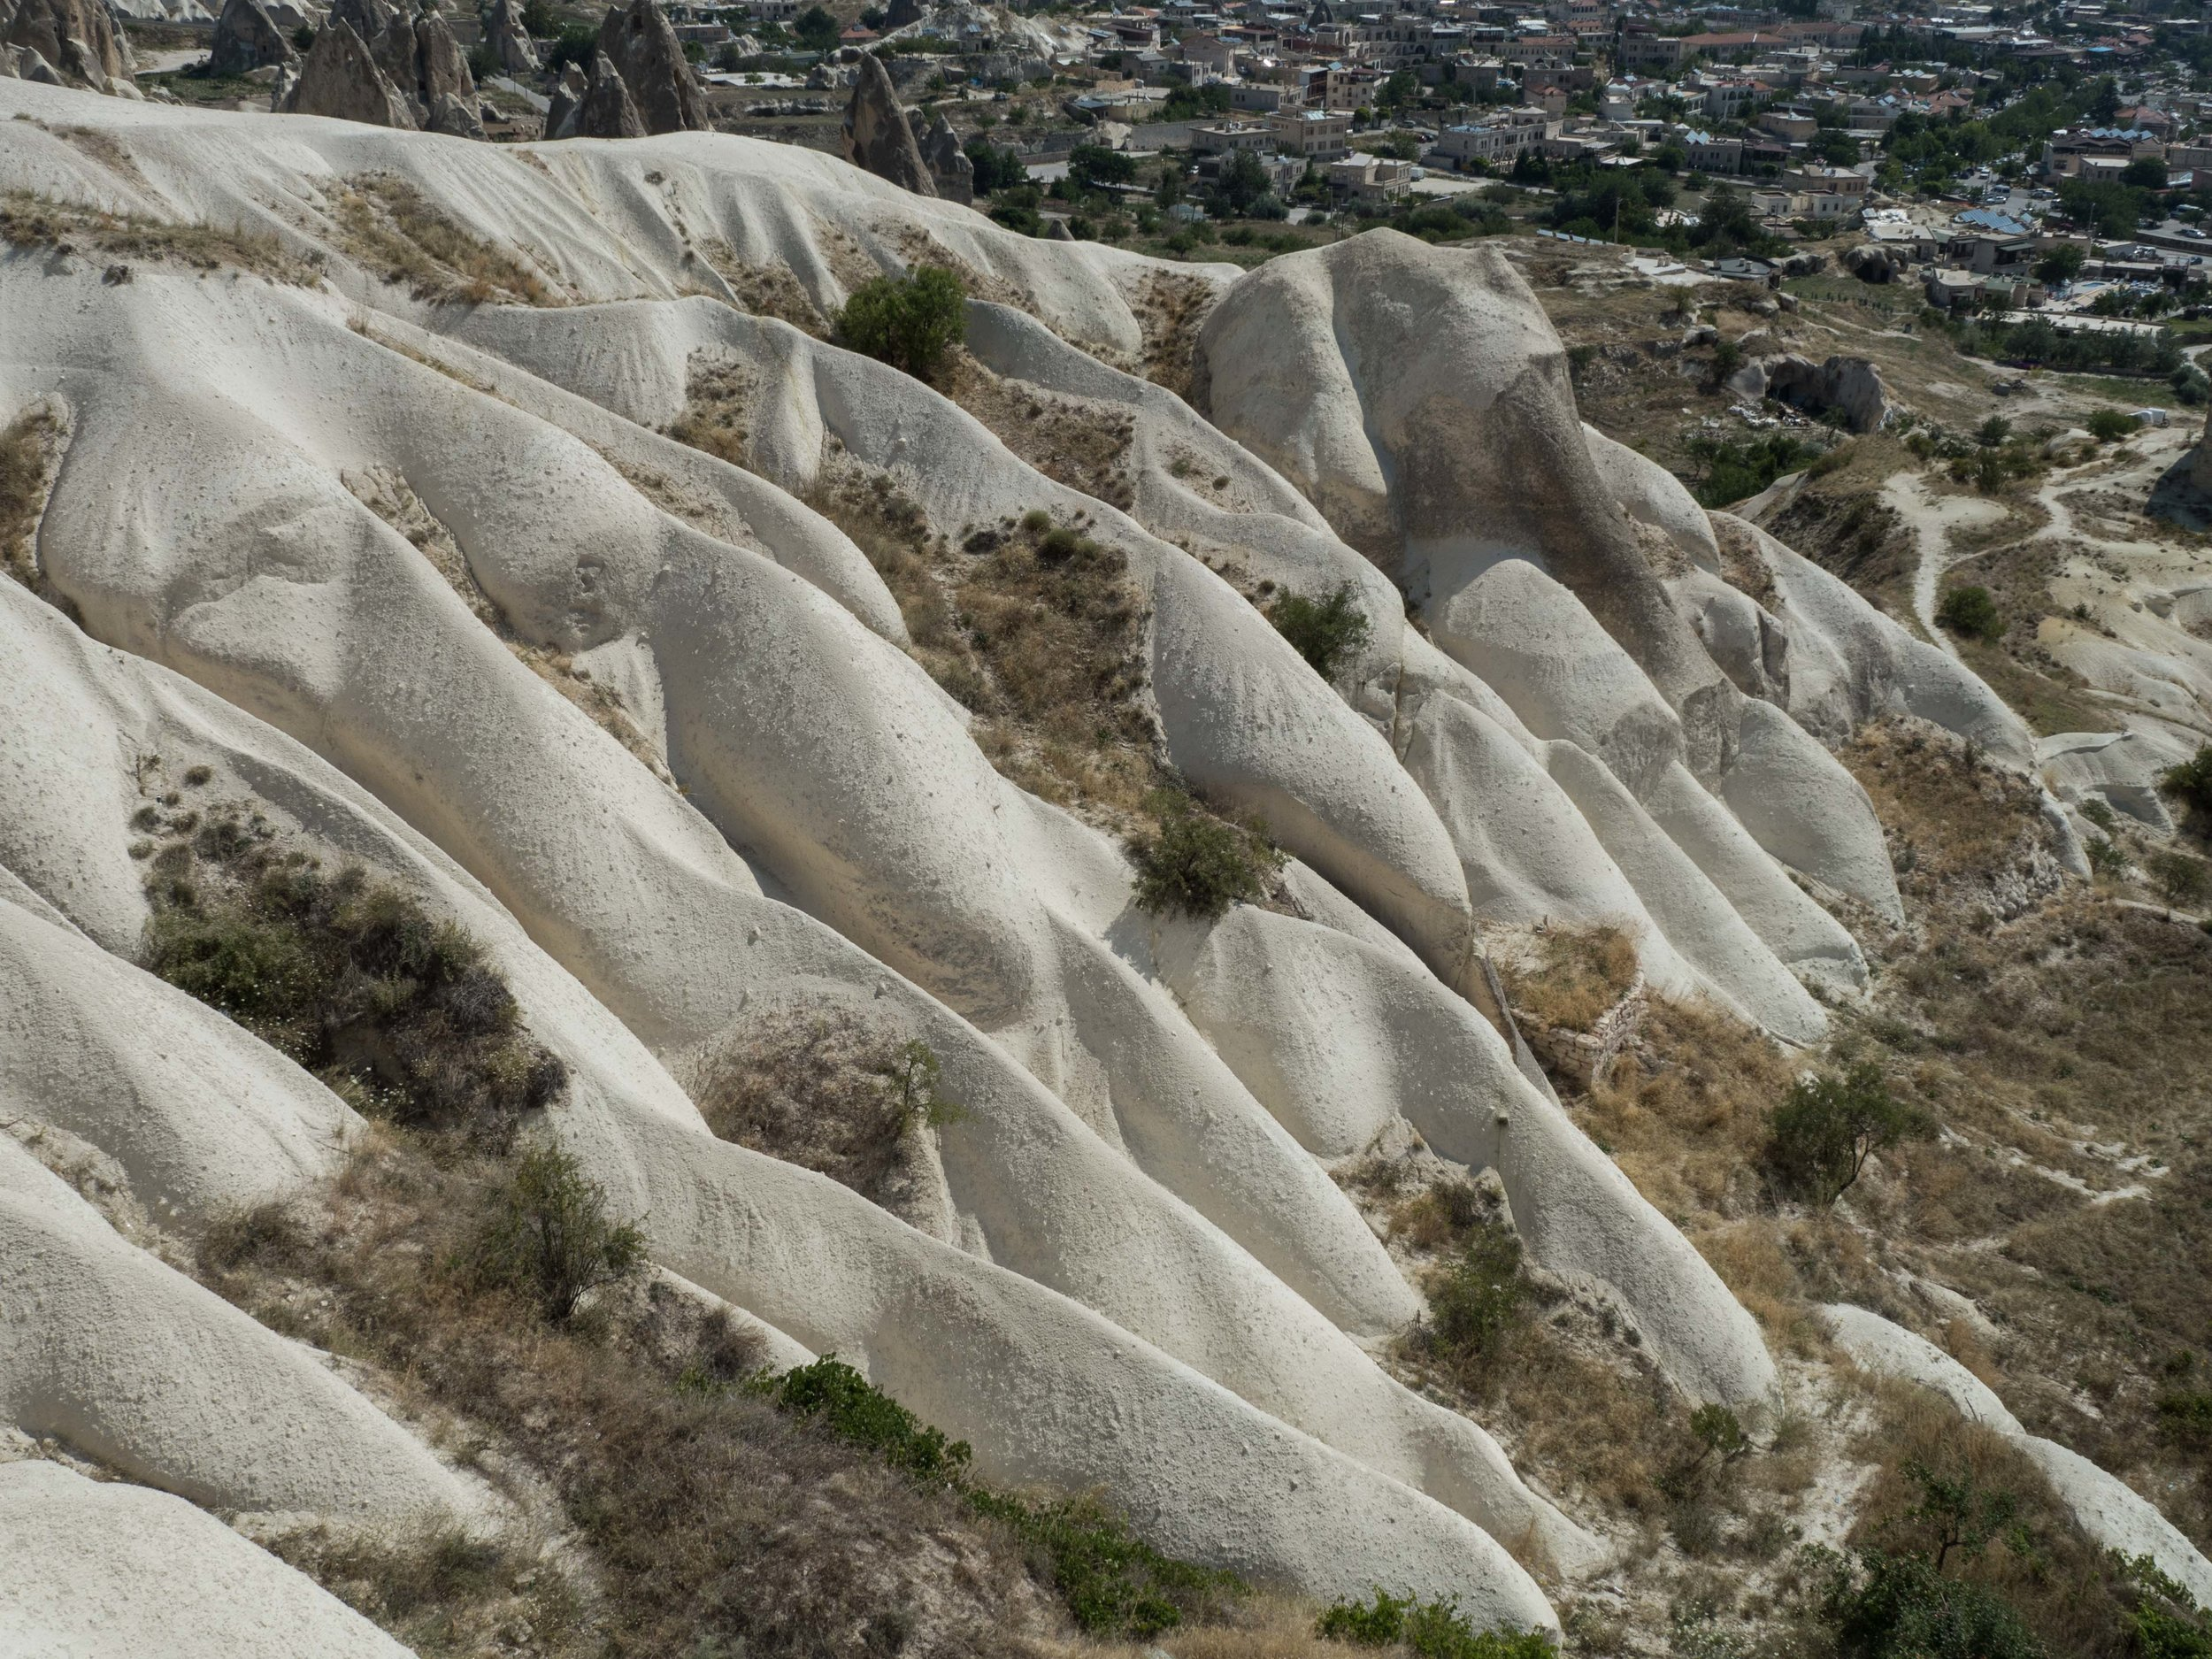 Sloping Formations